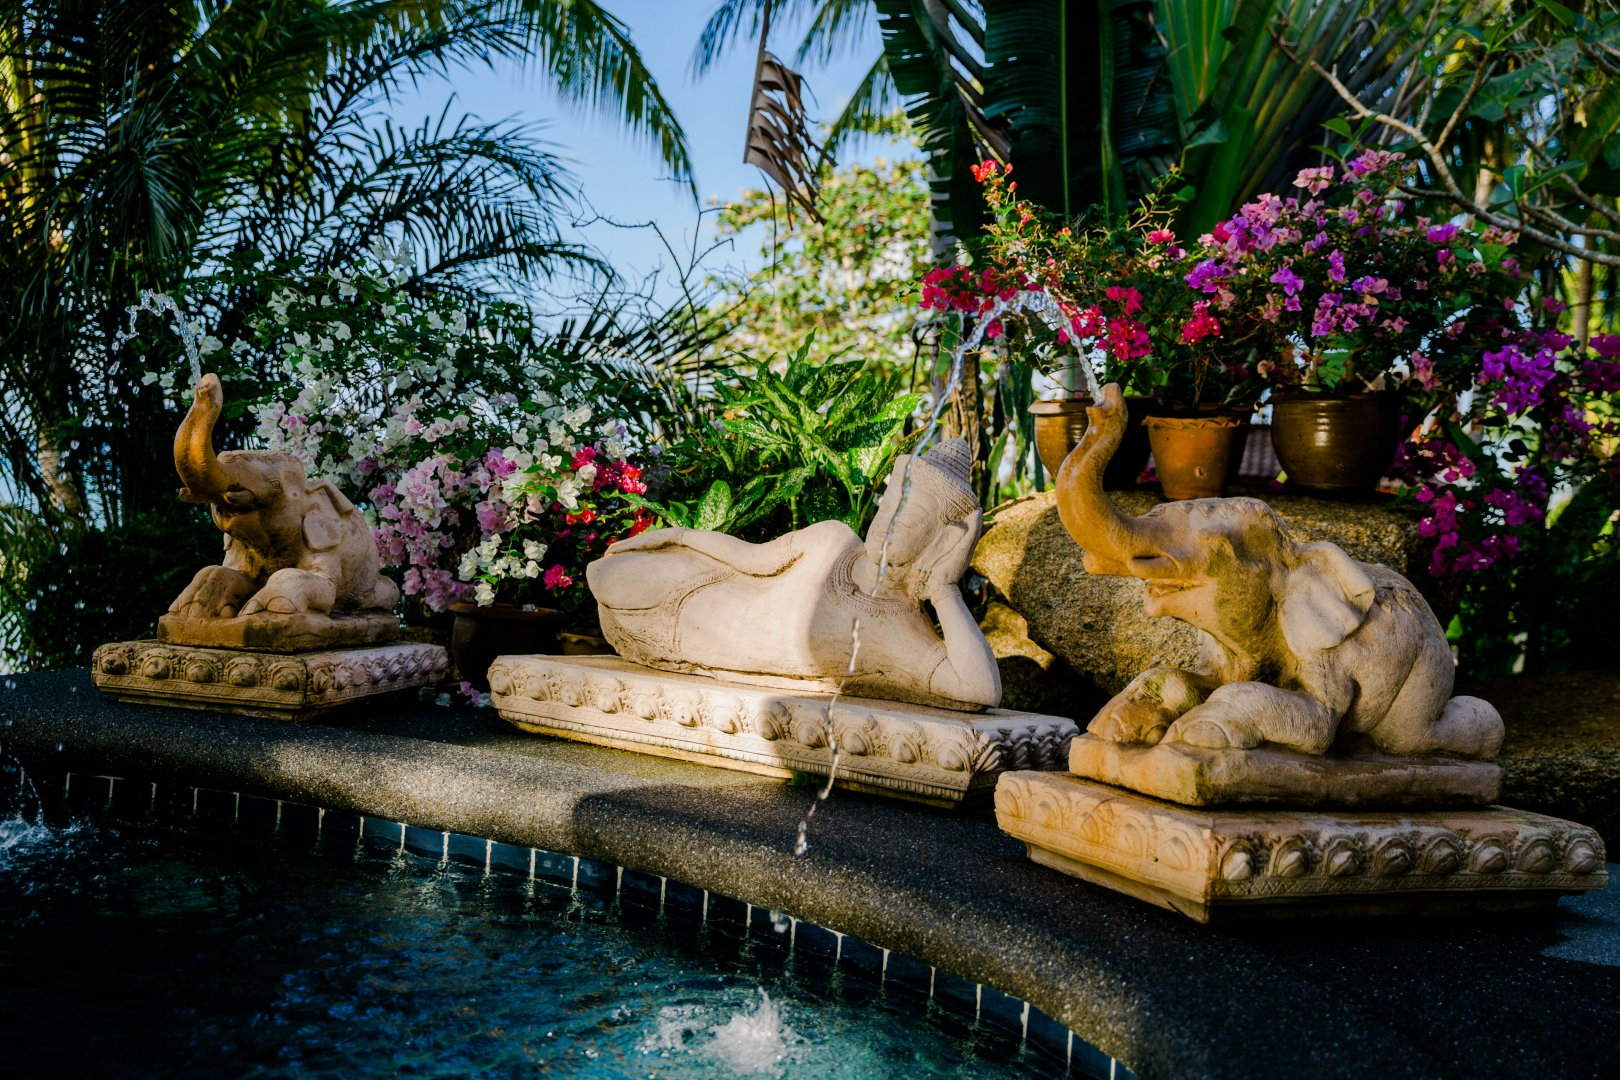 Statue Botany Garden Leisure Water feature Pond Plant Sculpture Flower Vacation Landscaping Tourism Rock Stone carving Art